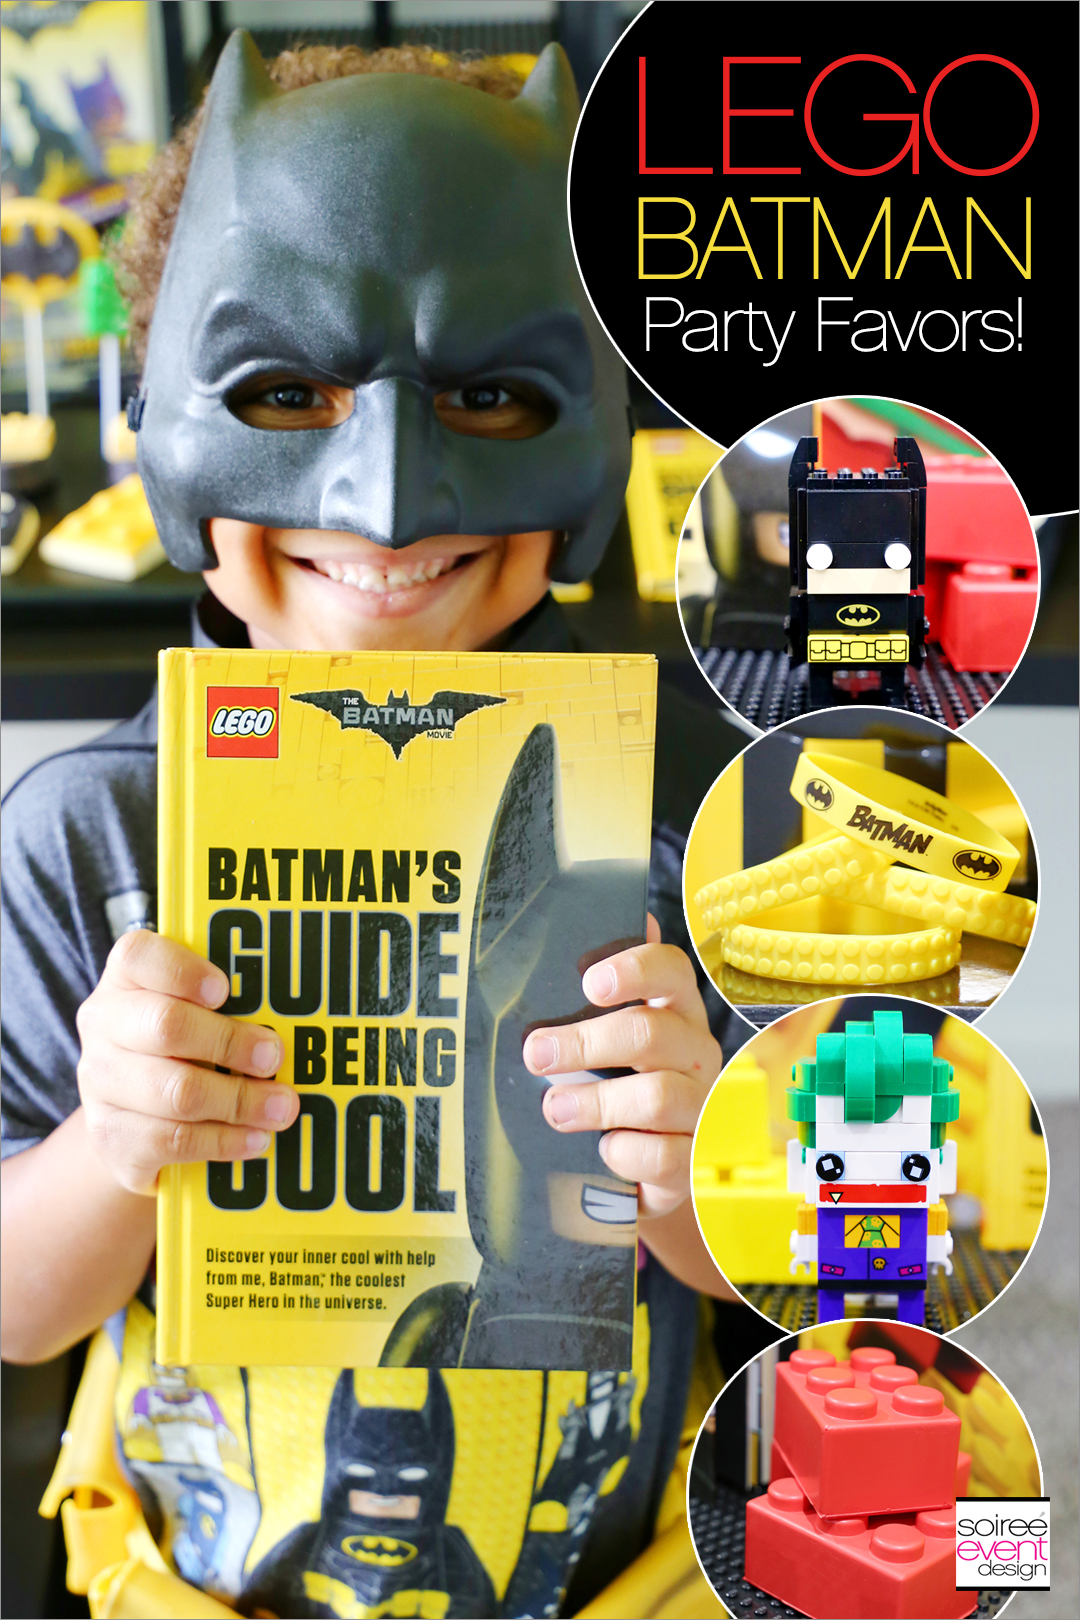 Lego Batman Party Ideas - Batman Party Favors - Soiree Event Design